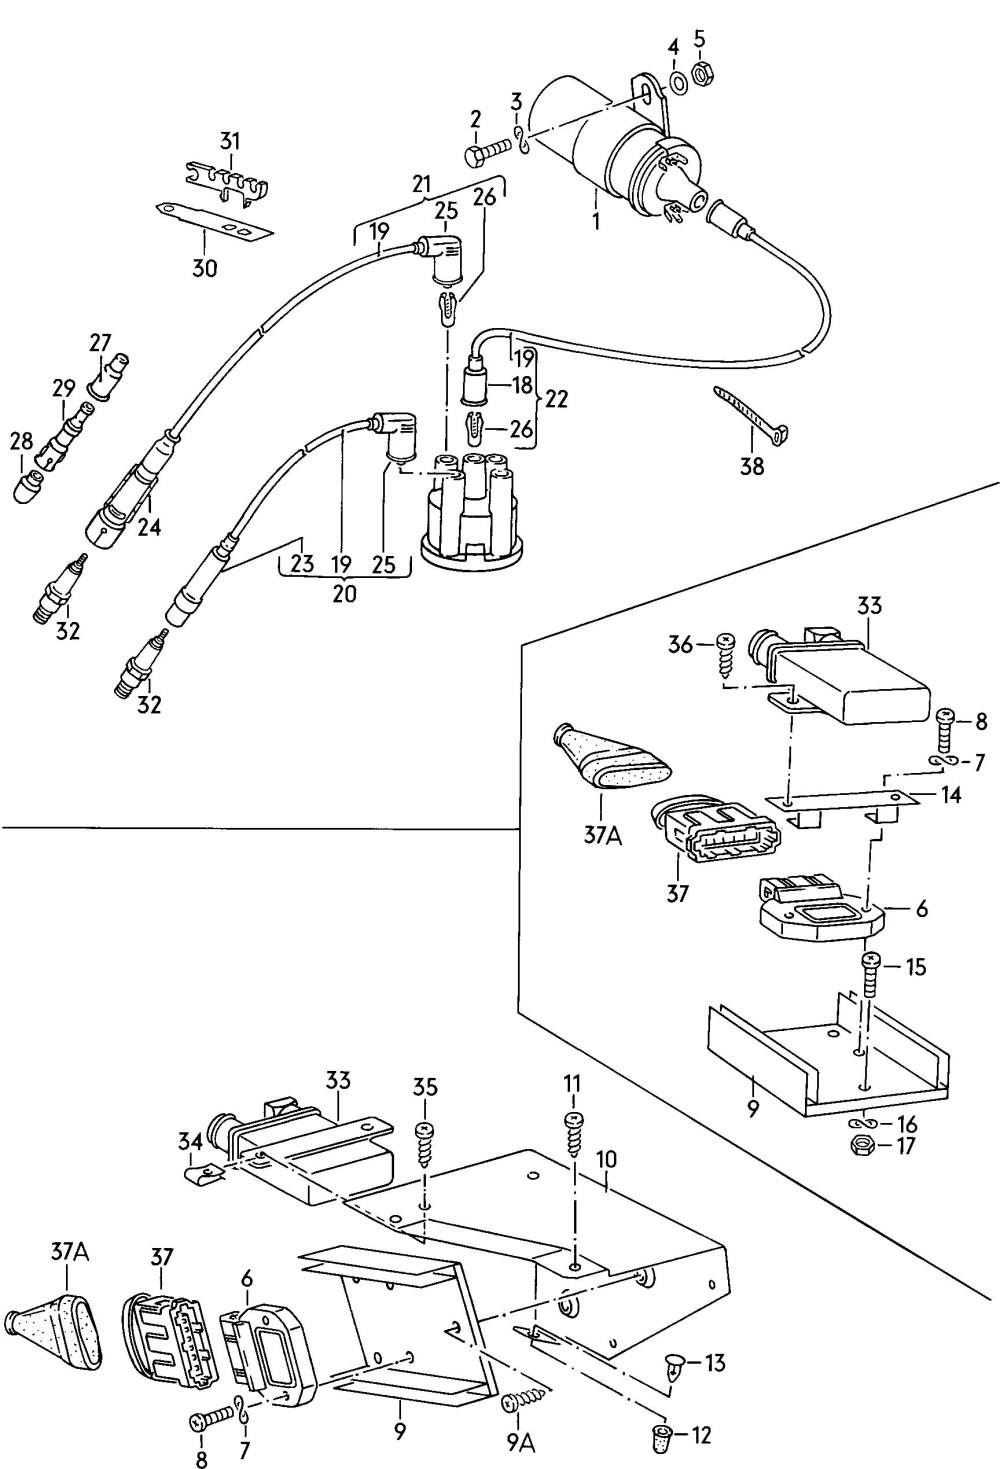 medium resolution of dune buggy wiring diagram free download wiring diagrams pictures